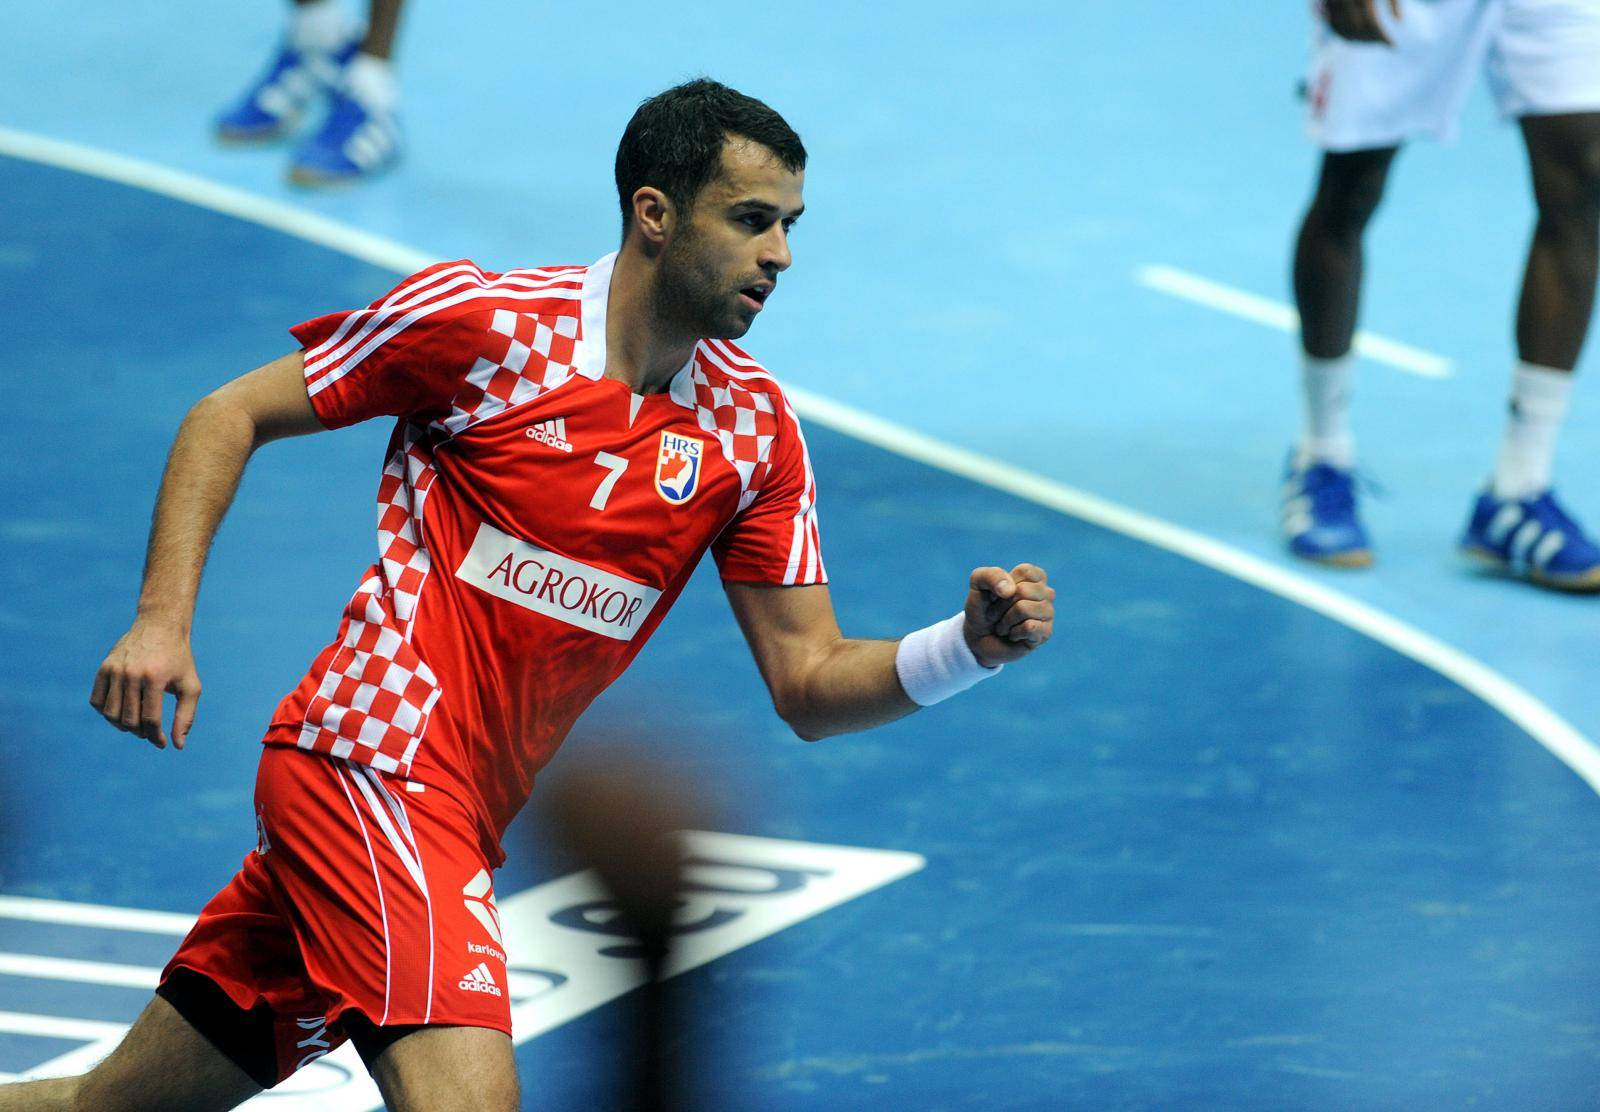 Men's World Handball Championship 2009 - Group B - Croatia - Croatia - Cuba